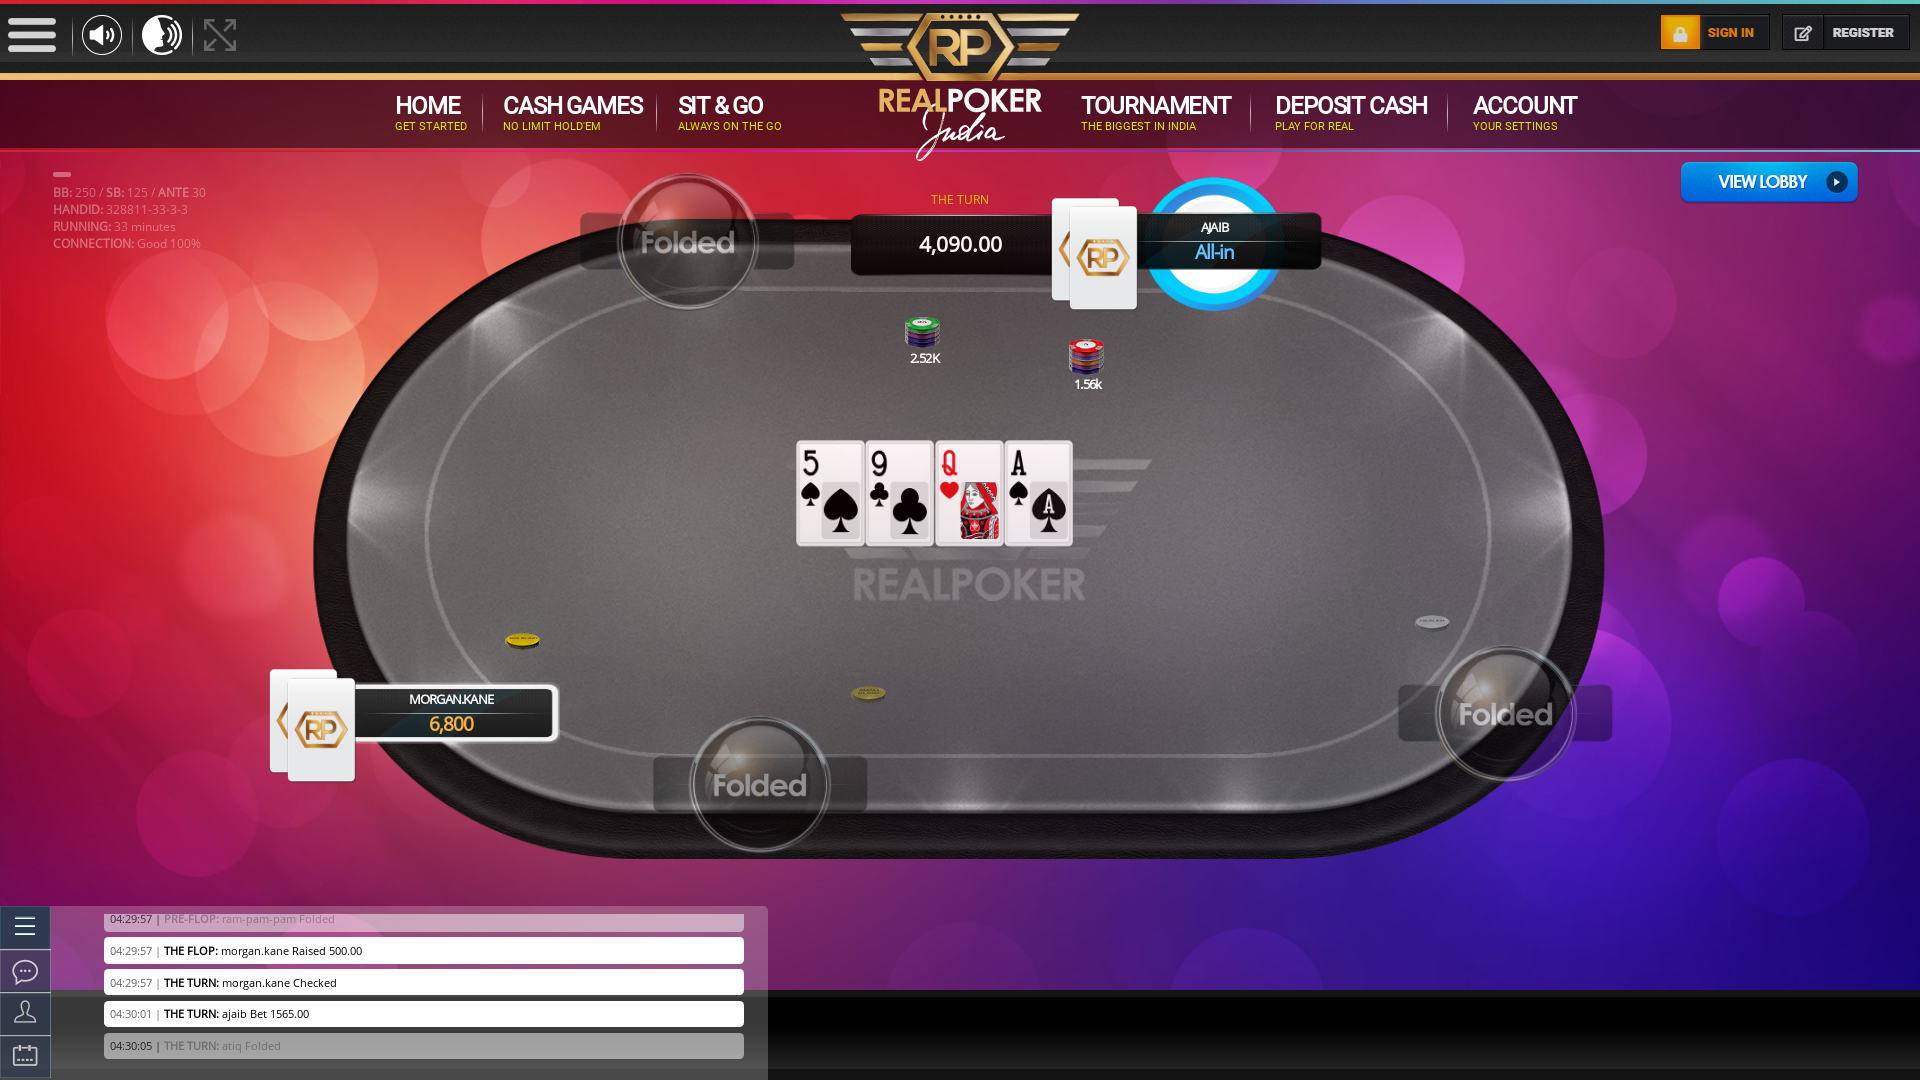 Indian online poker on a 10 player table in the 33rd minute match up